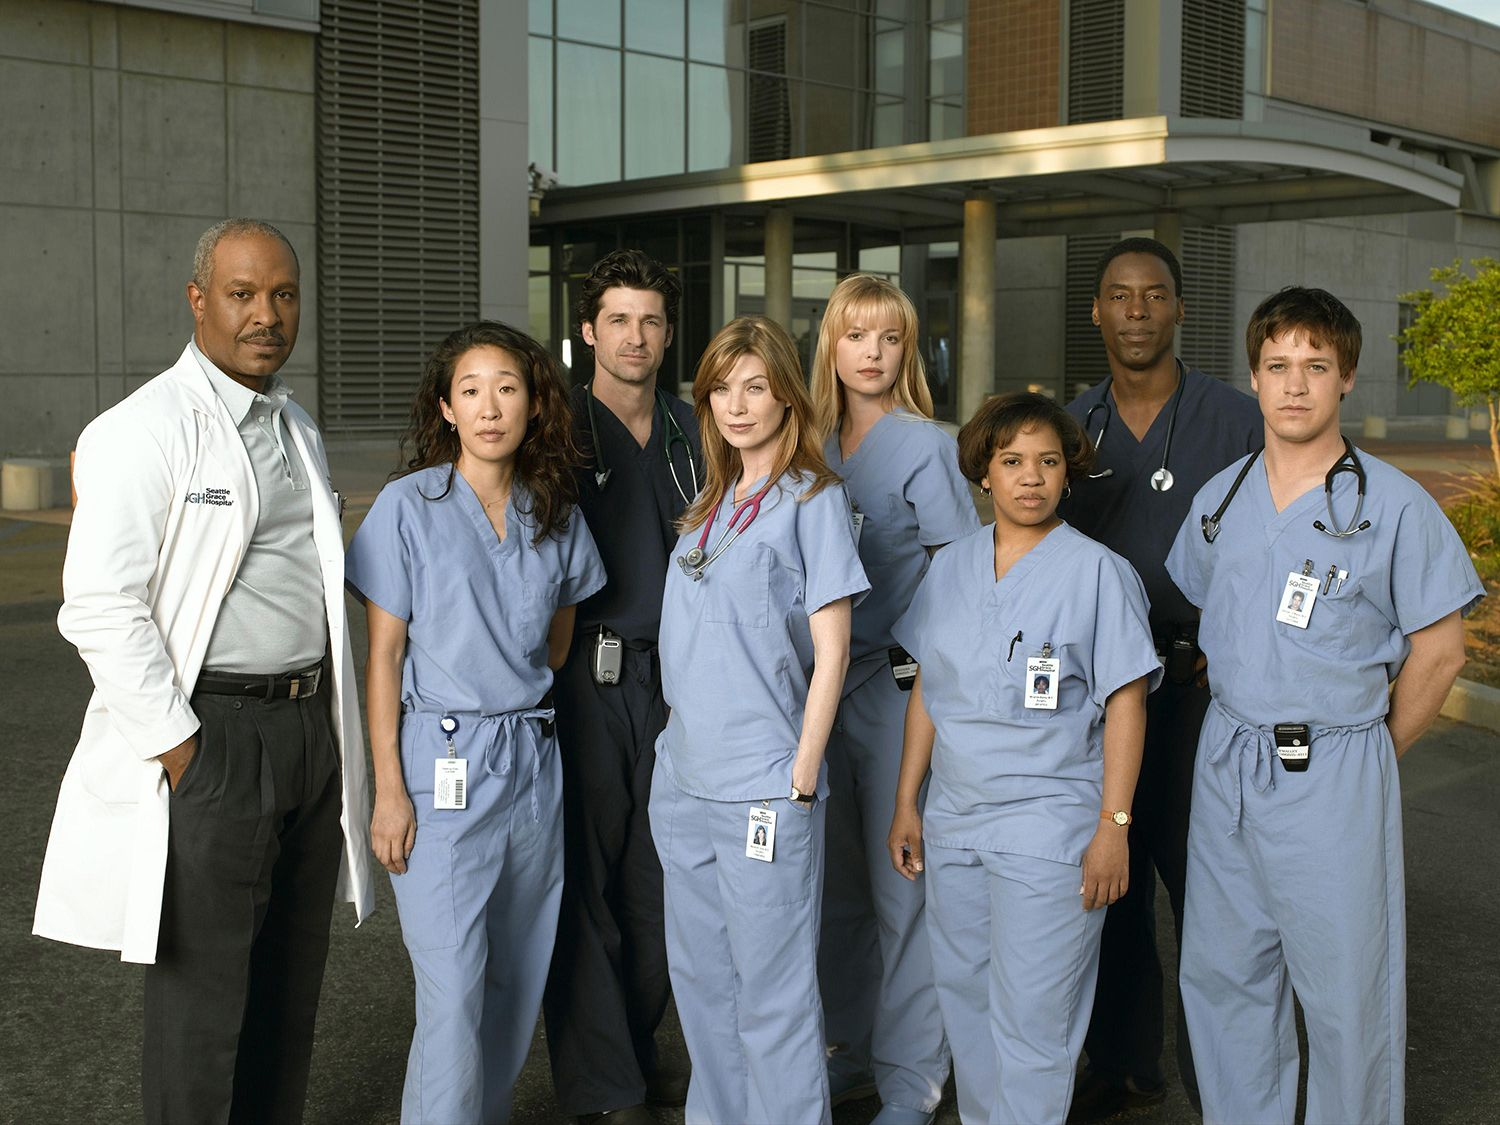 A Definitive Timeline of Behind-the-Scenes Drama on Greys Anatomy